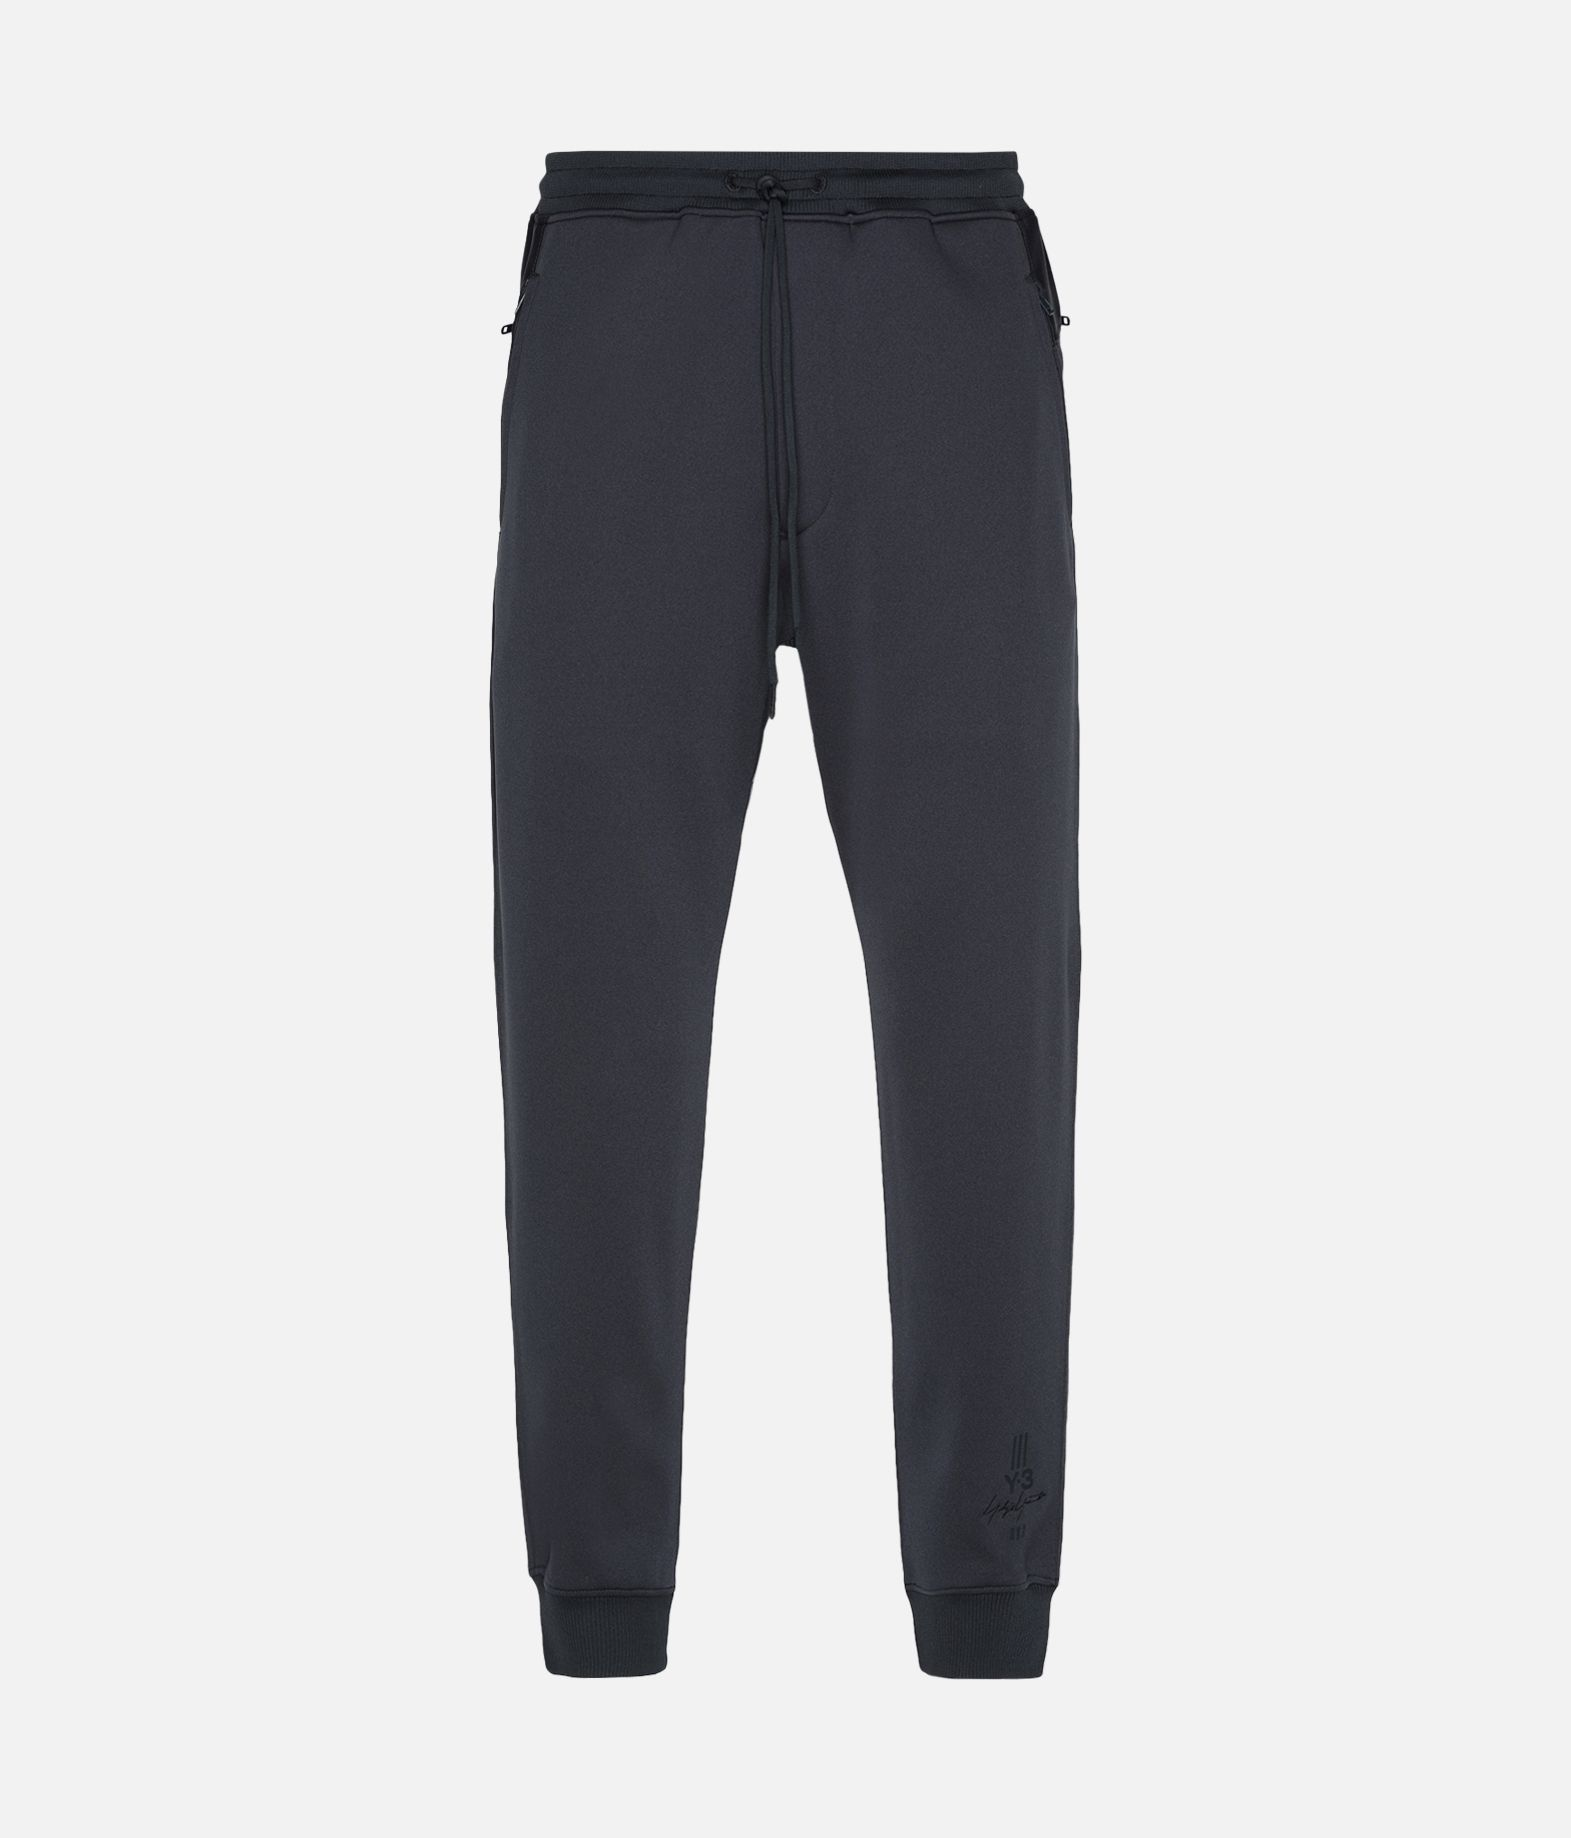 Y-3 Y-3 New Classic Track Pants Tracksuit bottoms Man f